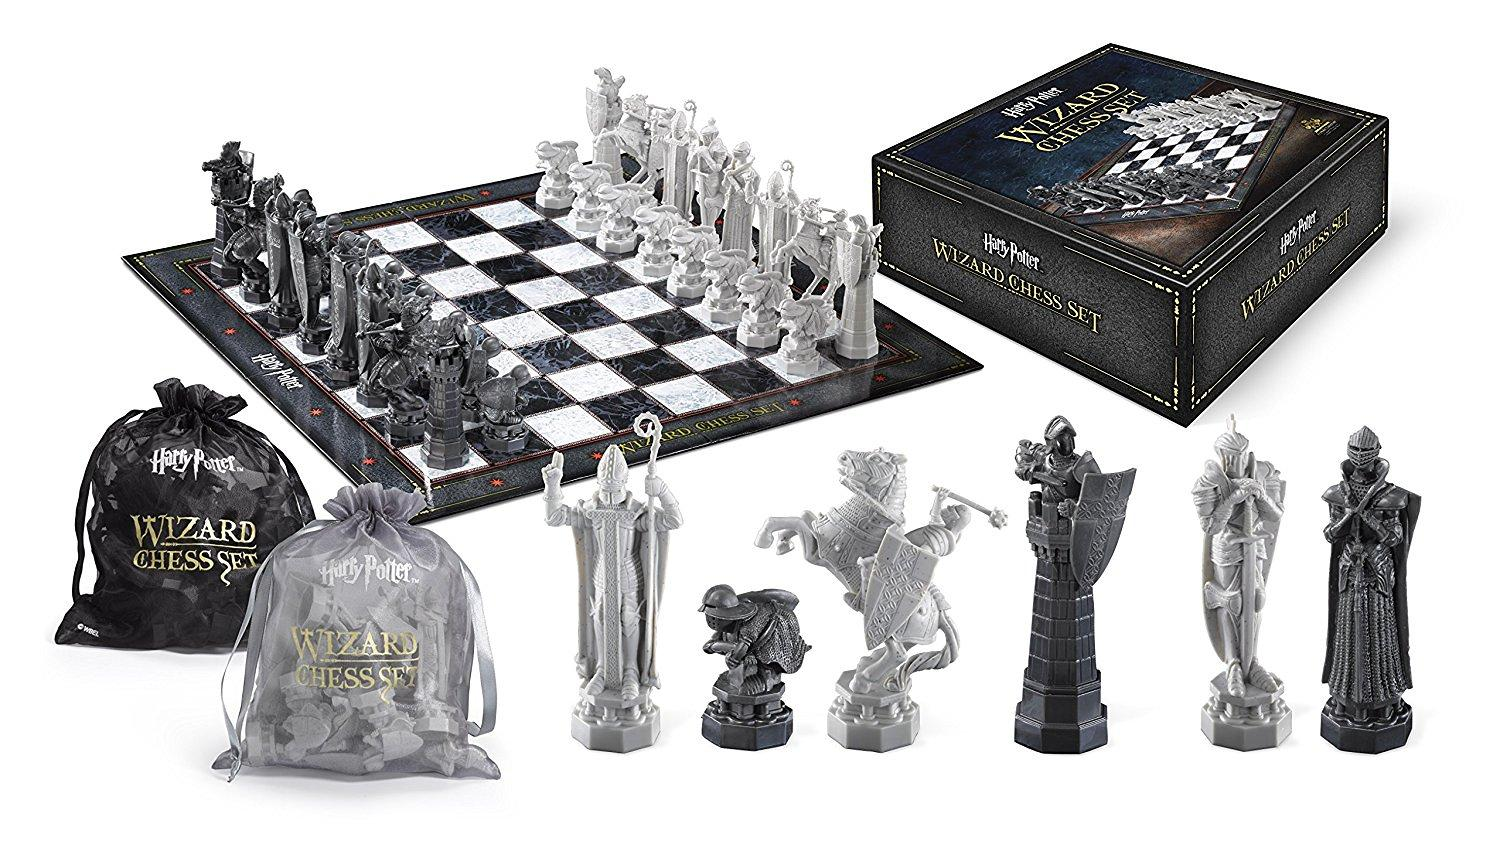 Harry Potter - Wizarding Chess Set